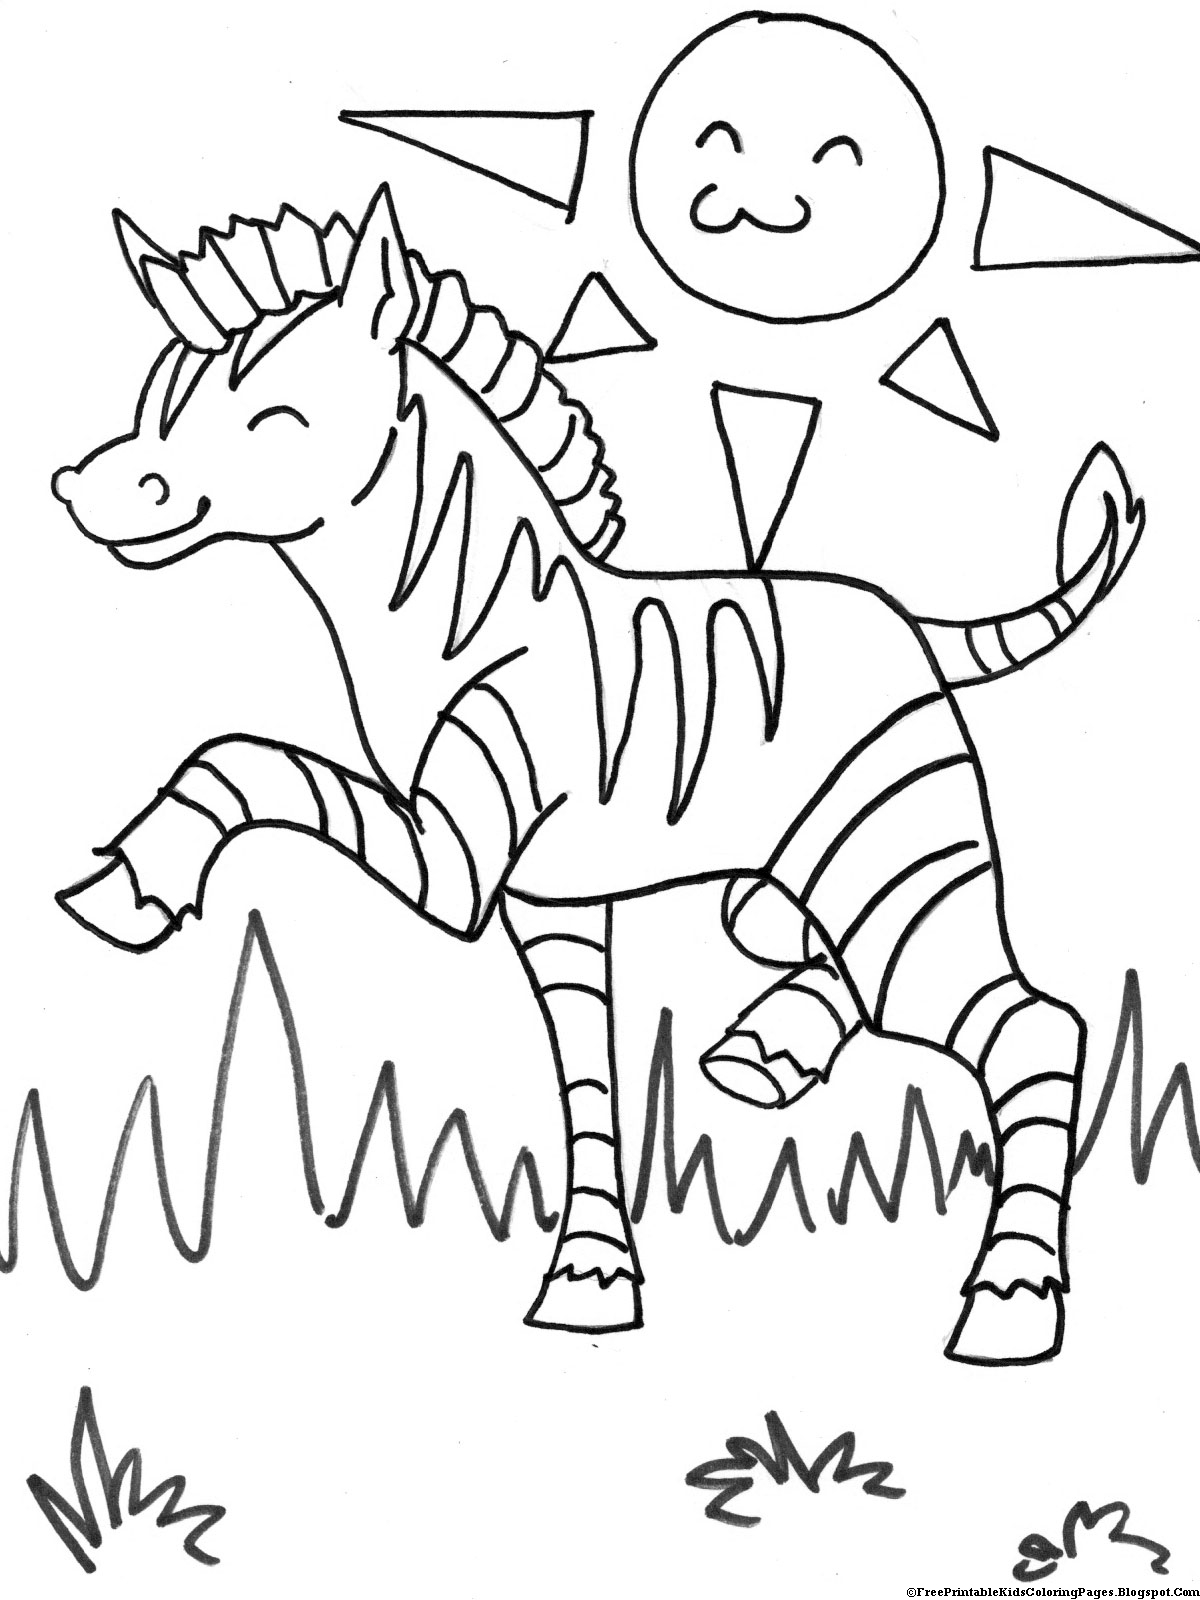 zebra coloring pages free - photo #33